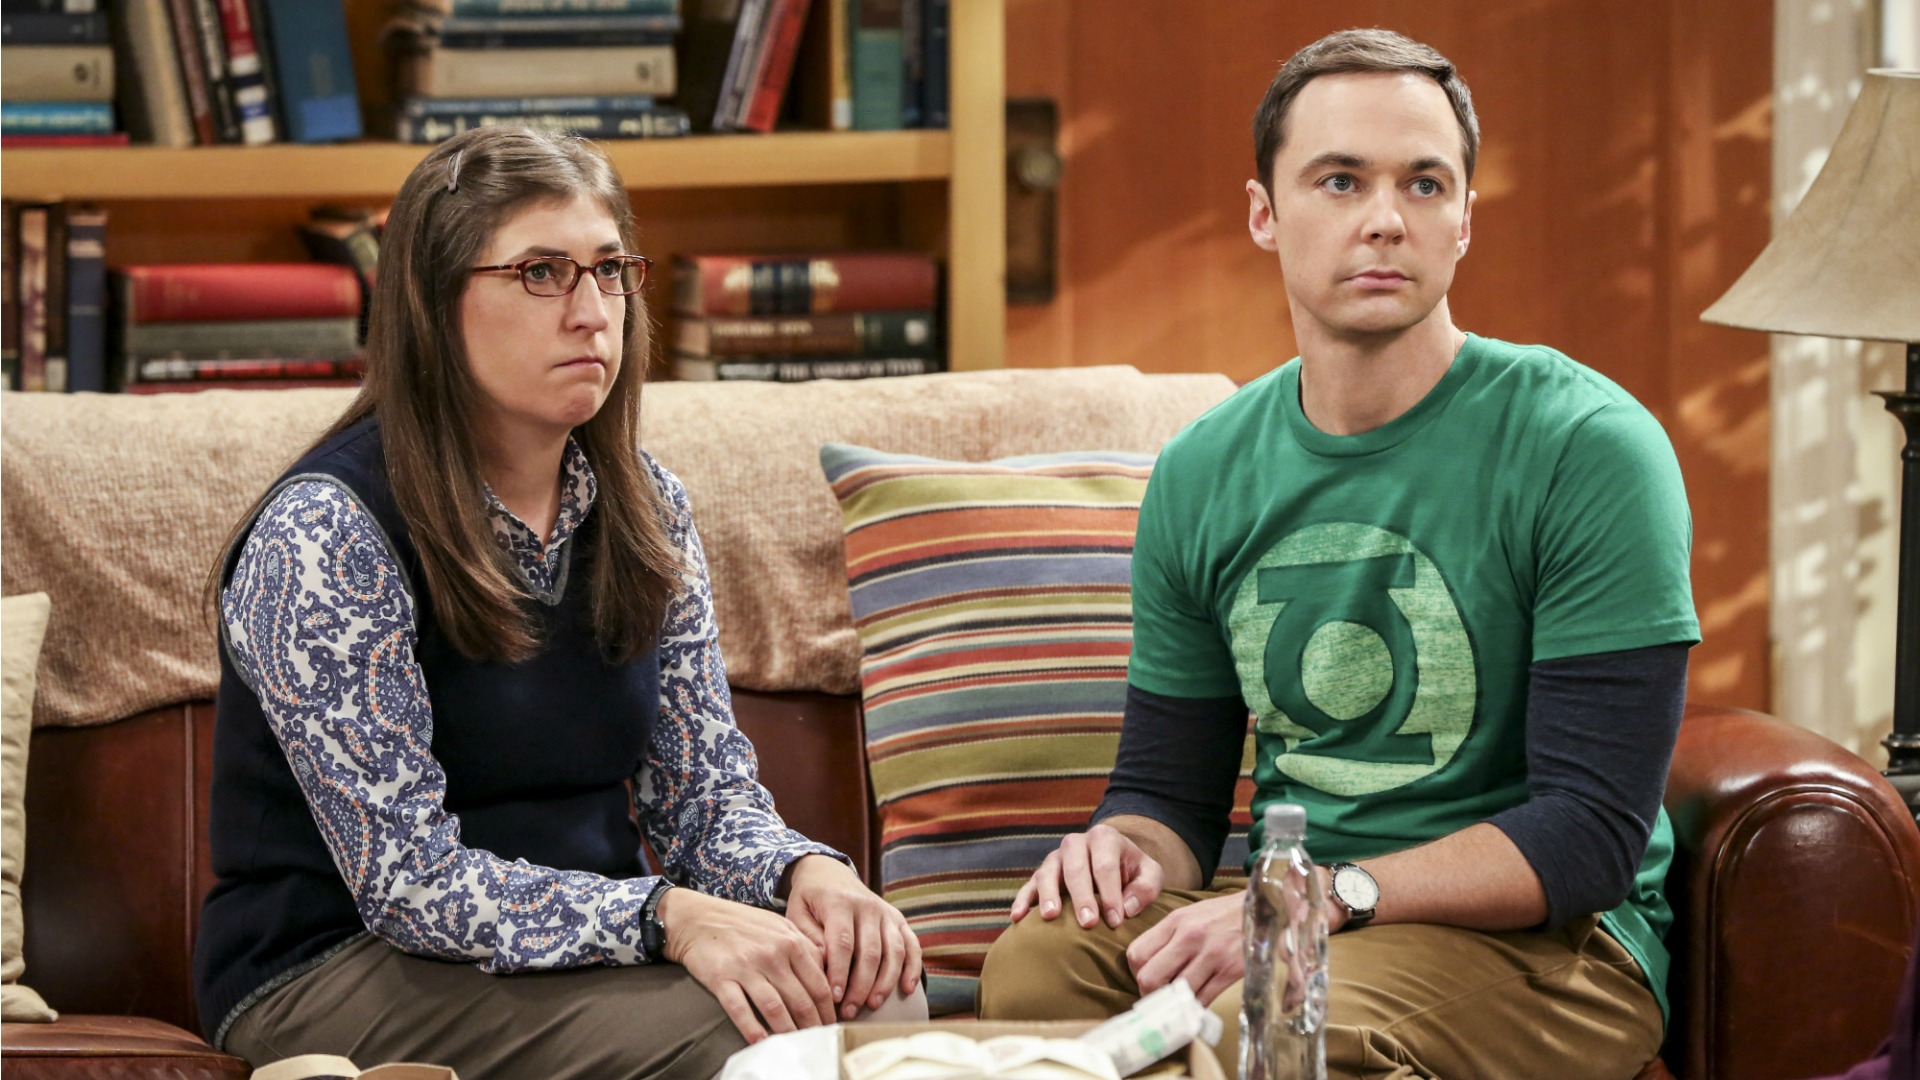 Amy and Sheldon look concerned on the couch.